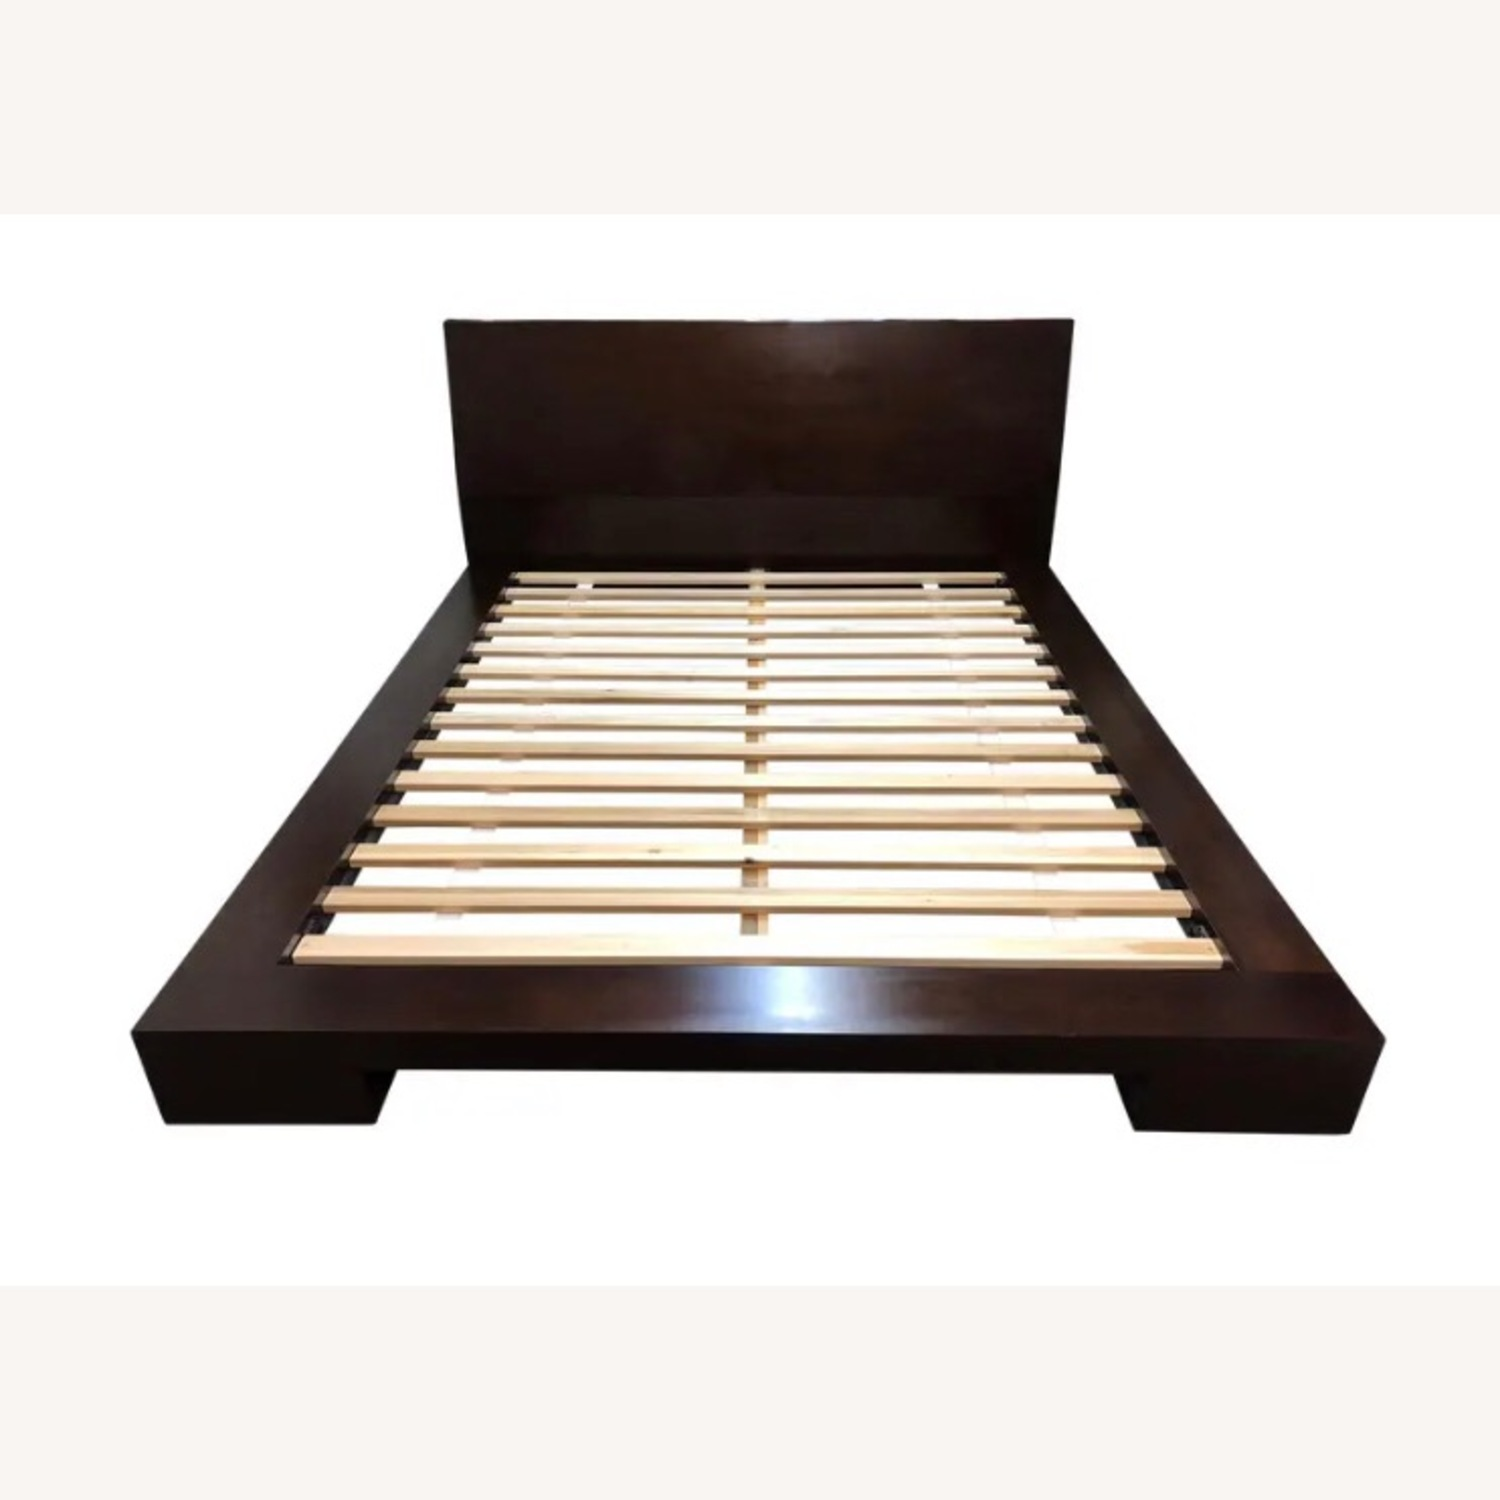 Crate and Barrel Queen Asher Bed - image-4